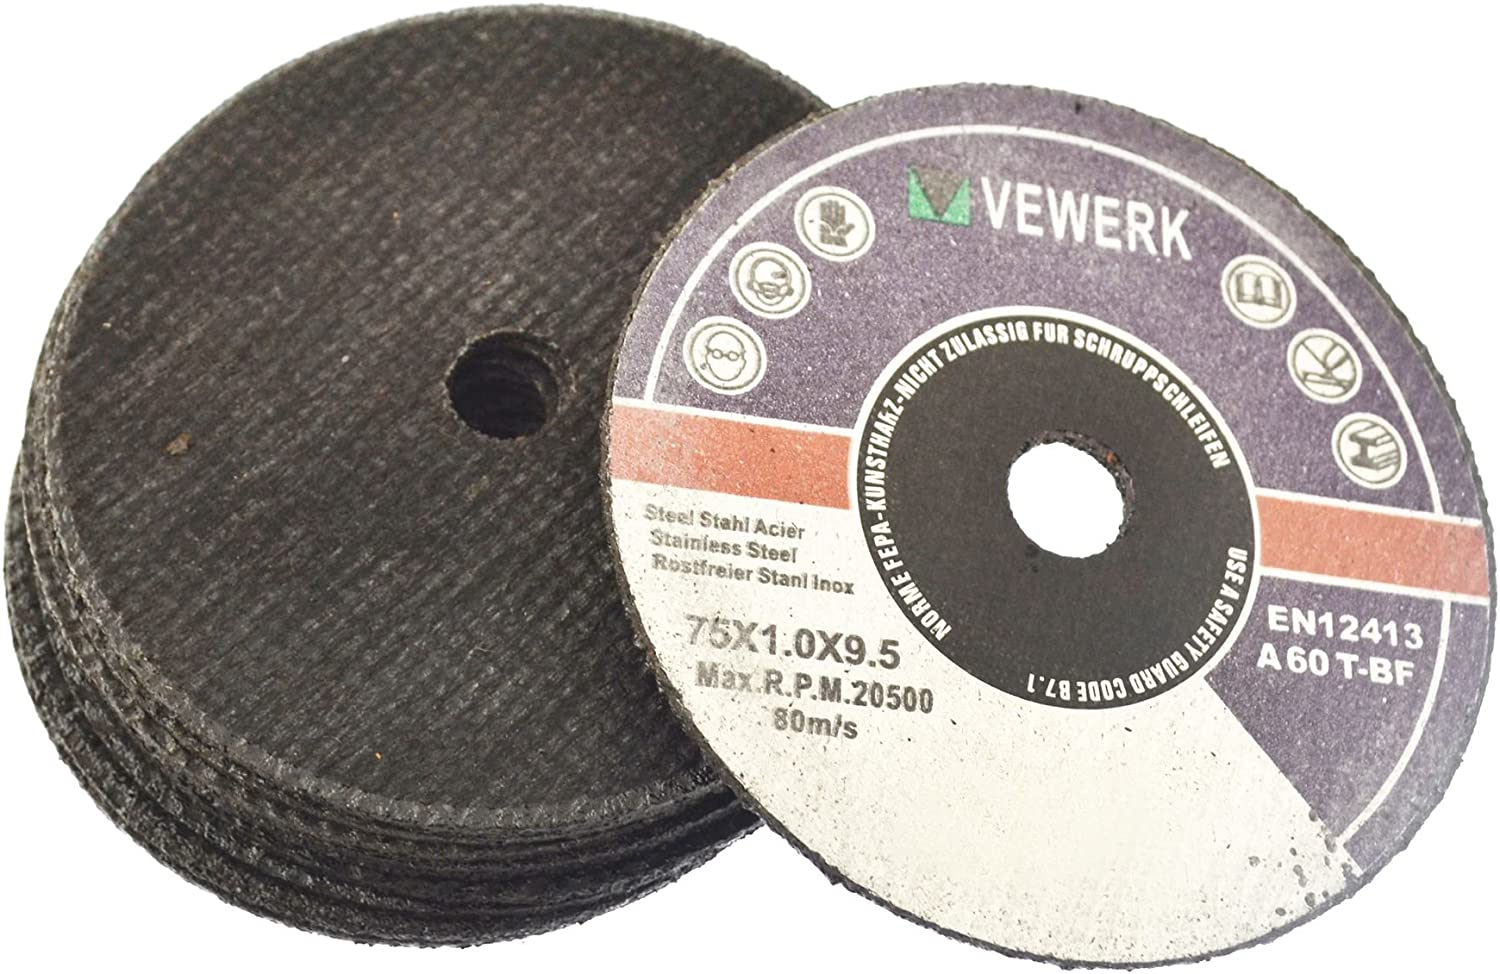 3 Cutting Grinding Discs for Air Cut-off Tool Grinder Cutoff 25 PACK 75mm AT823